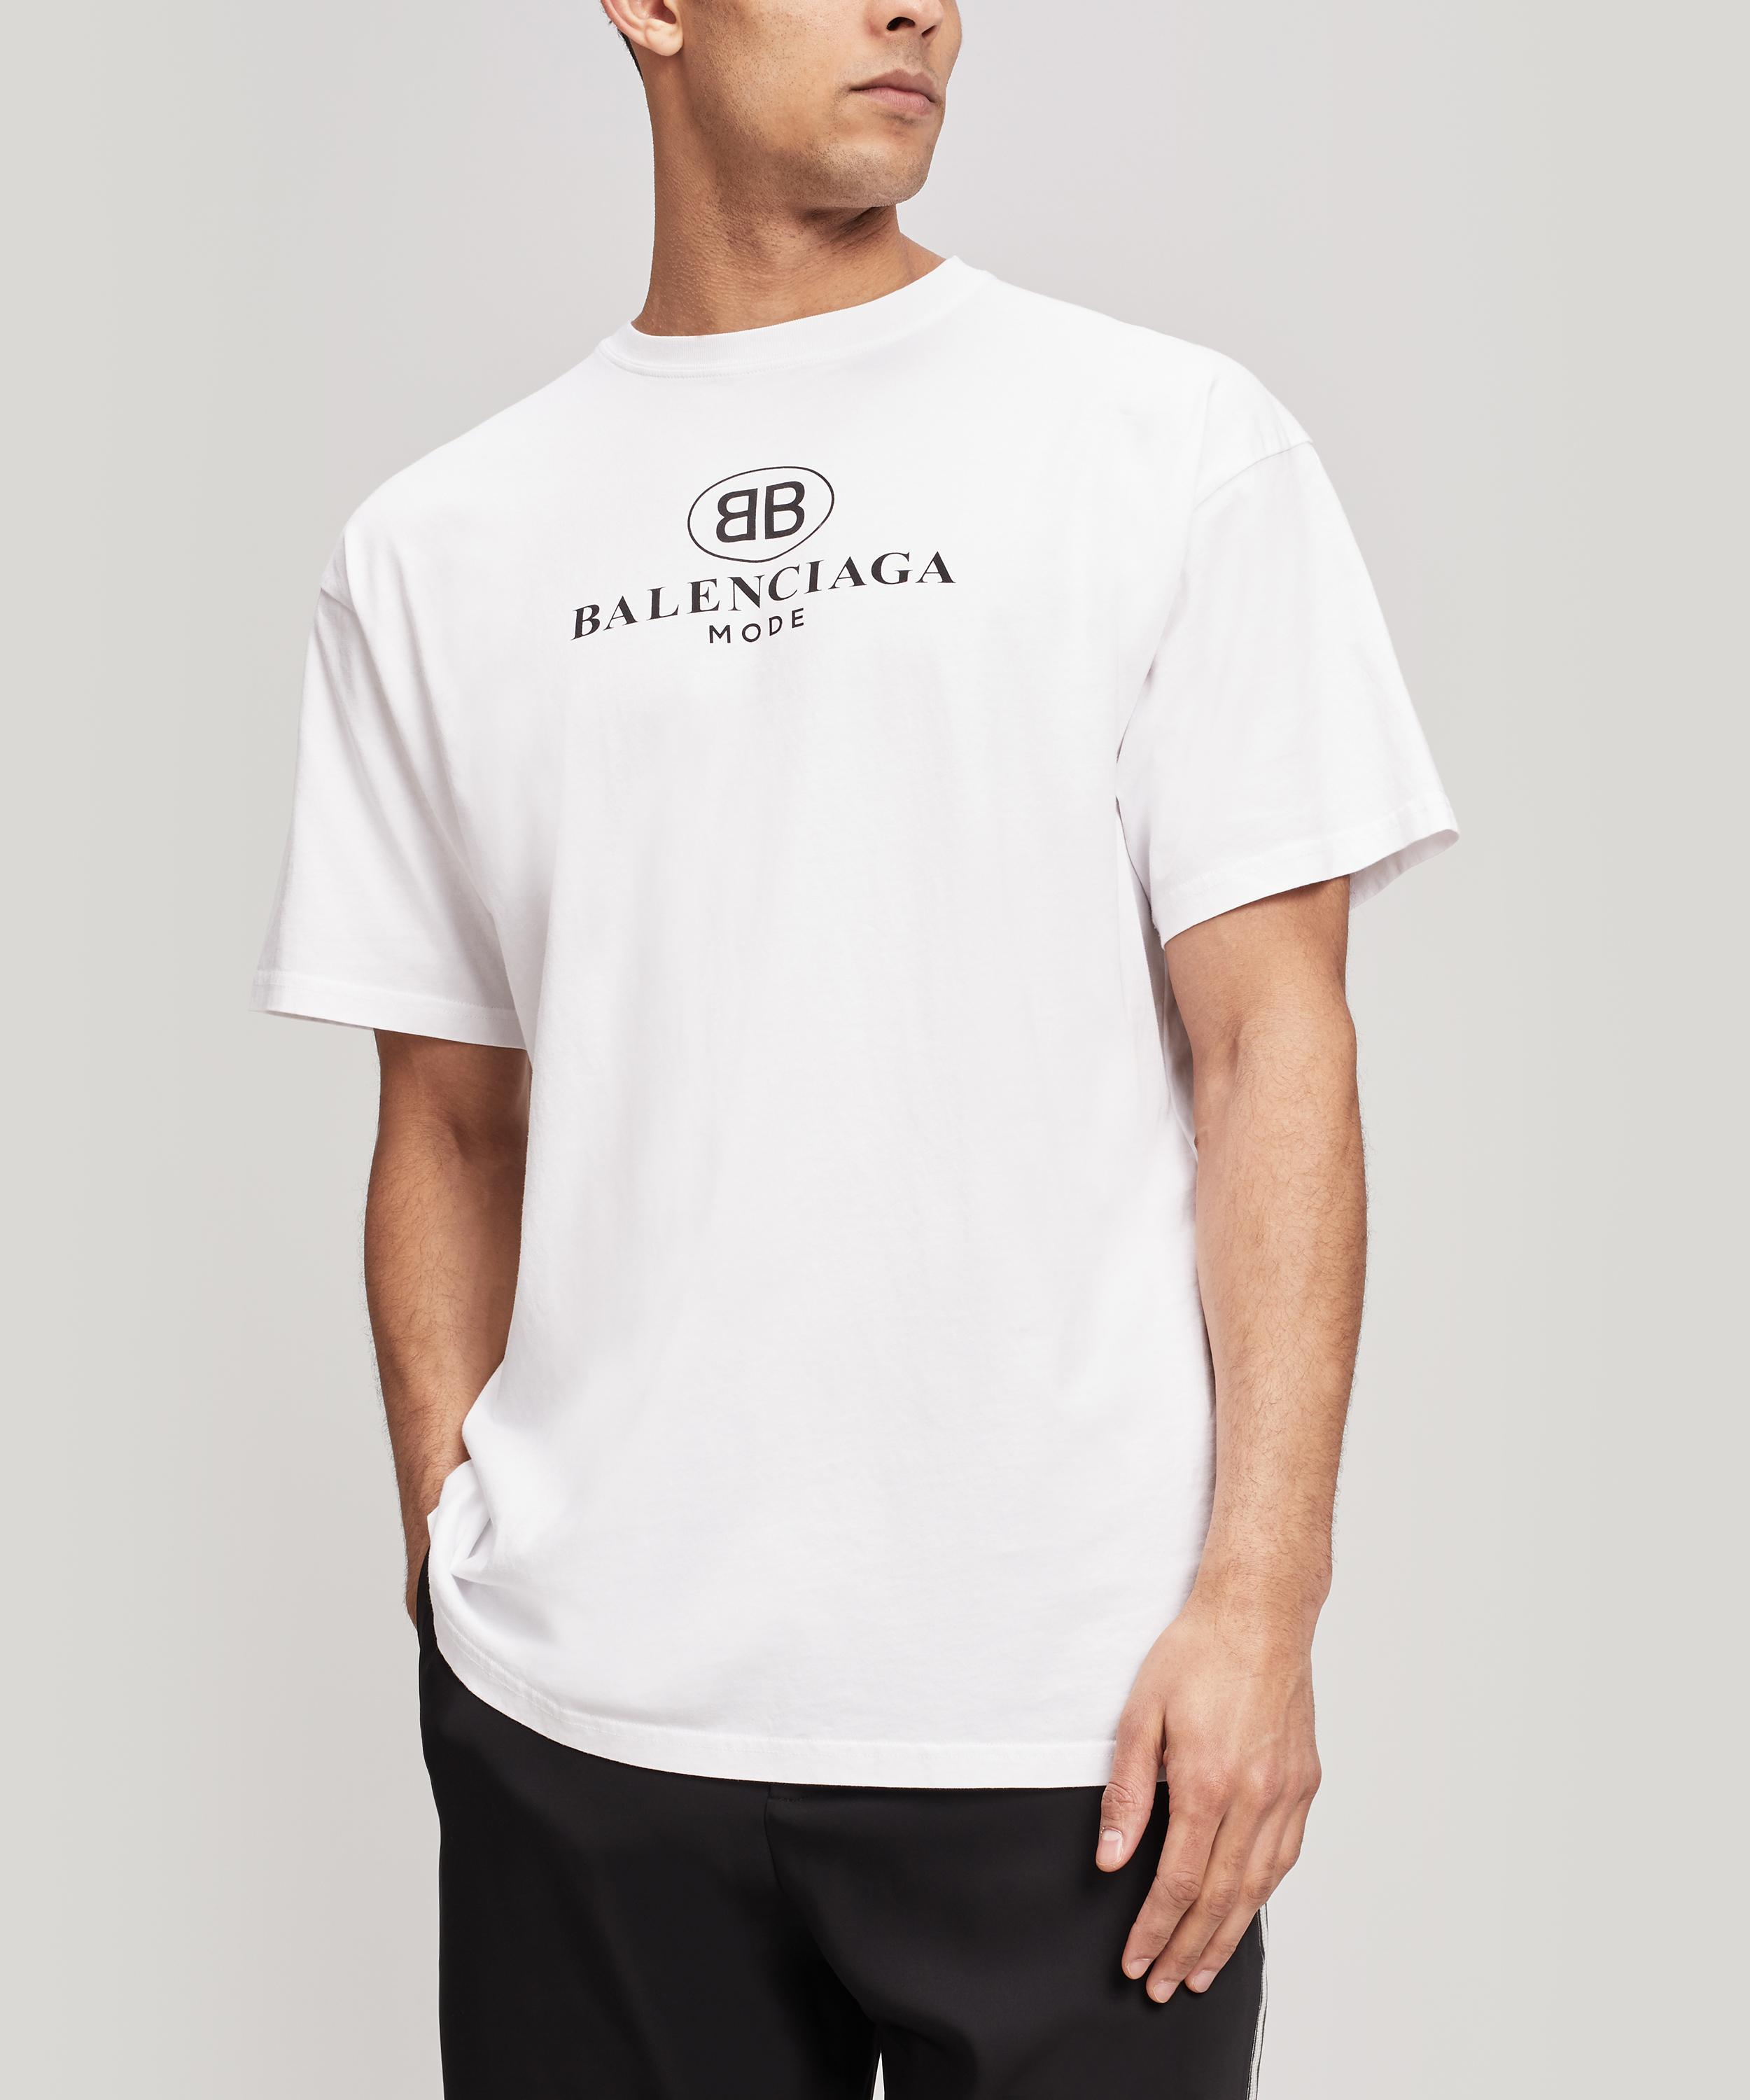 6a5dfab1 Balenciaga - White Mode Logo T-shirt for Men - Lyst. View fullscreen